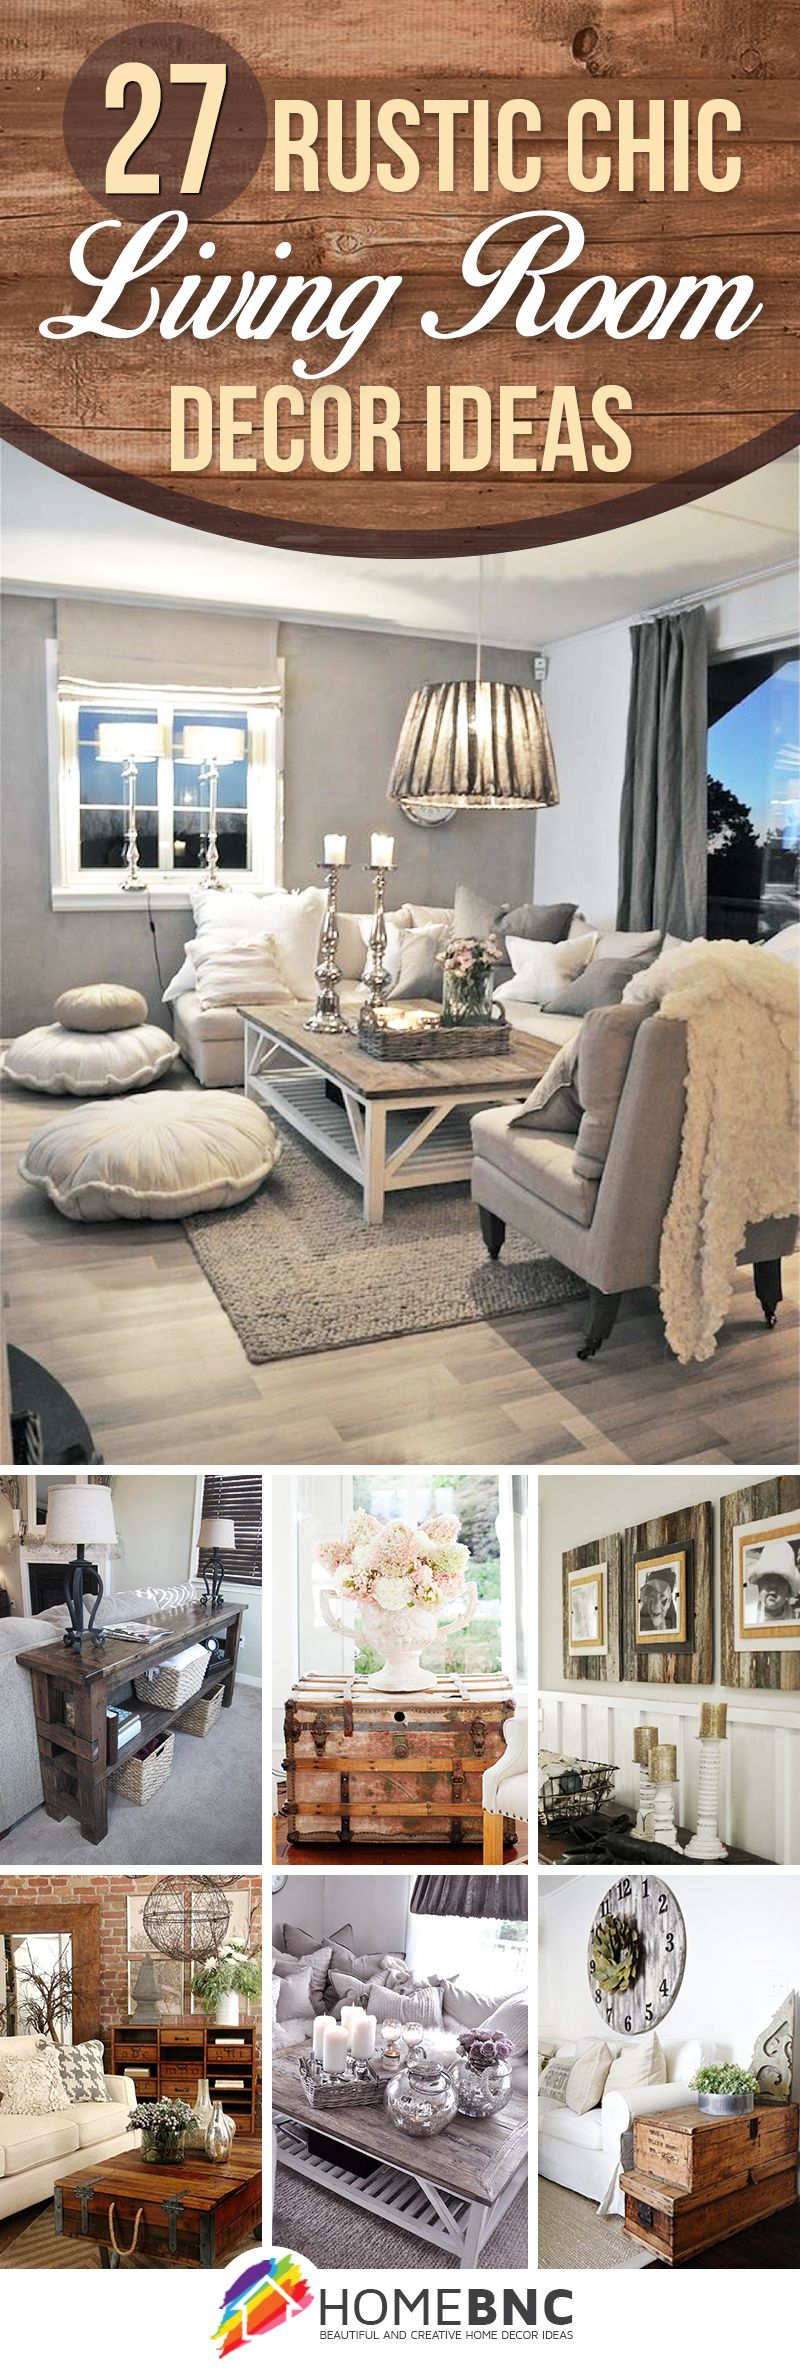 Merveilleux Rustic Chic Living Room Ideas